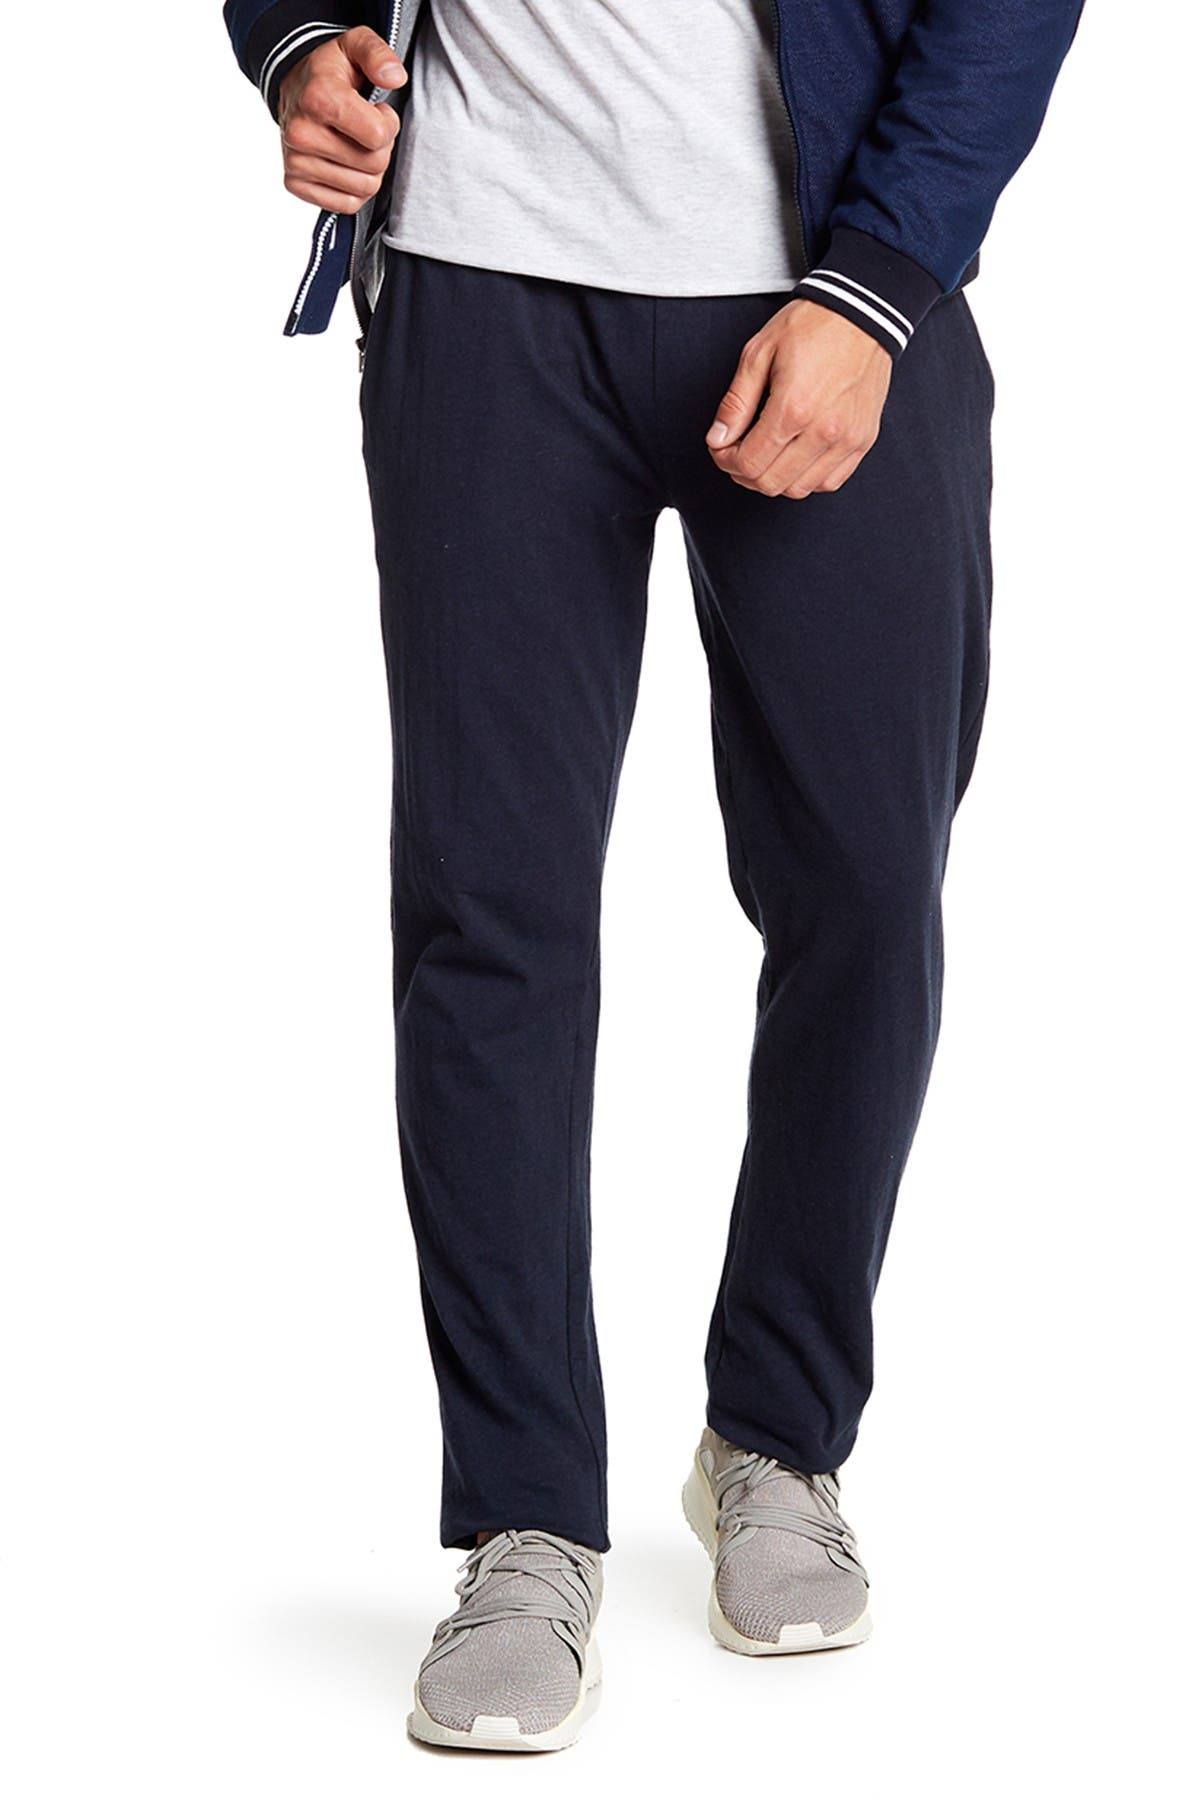 Image of Unsimply Stitched Straight Leg Lounge Pants